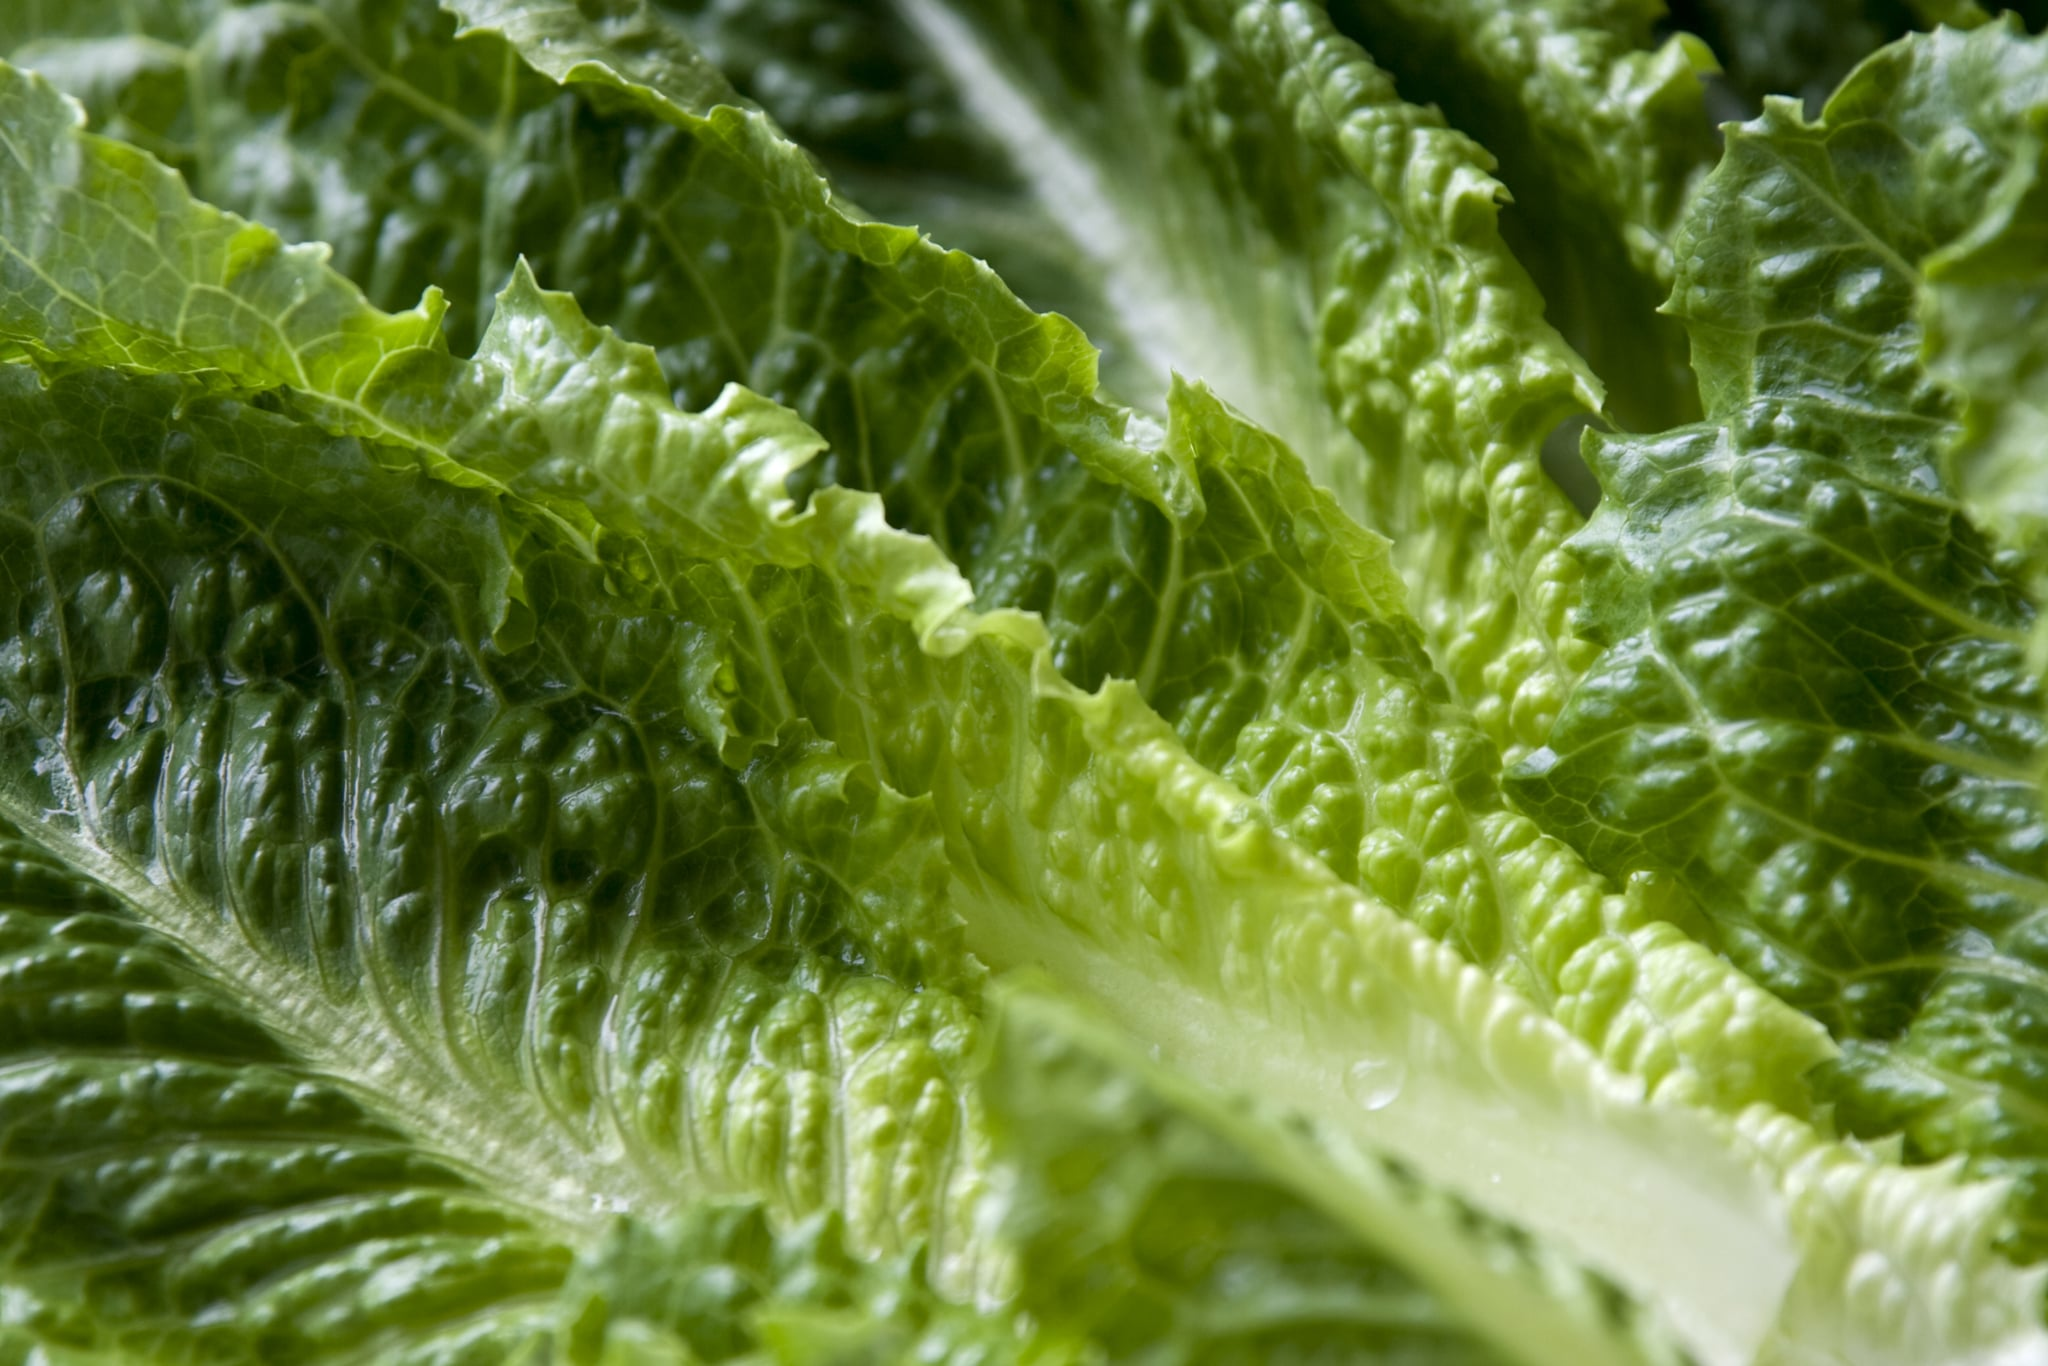 Wet leaves of Romaine lettuce.